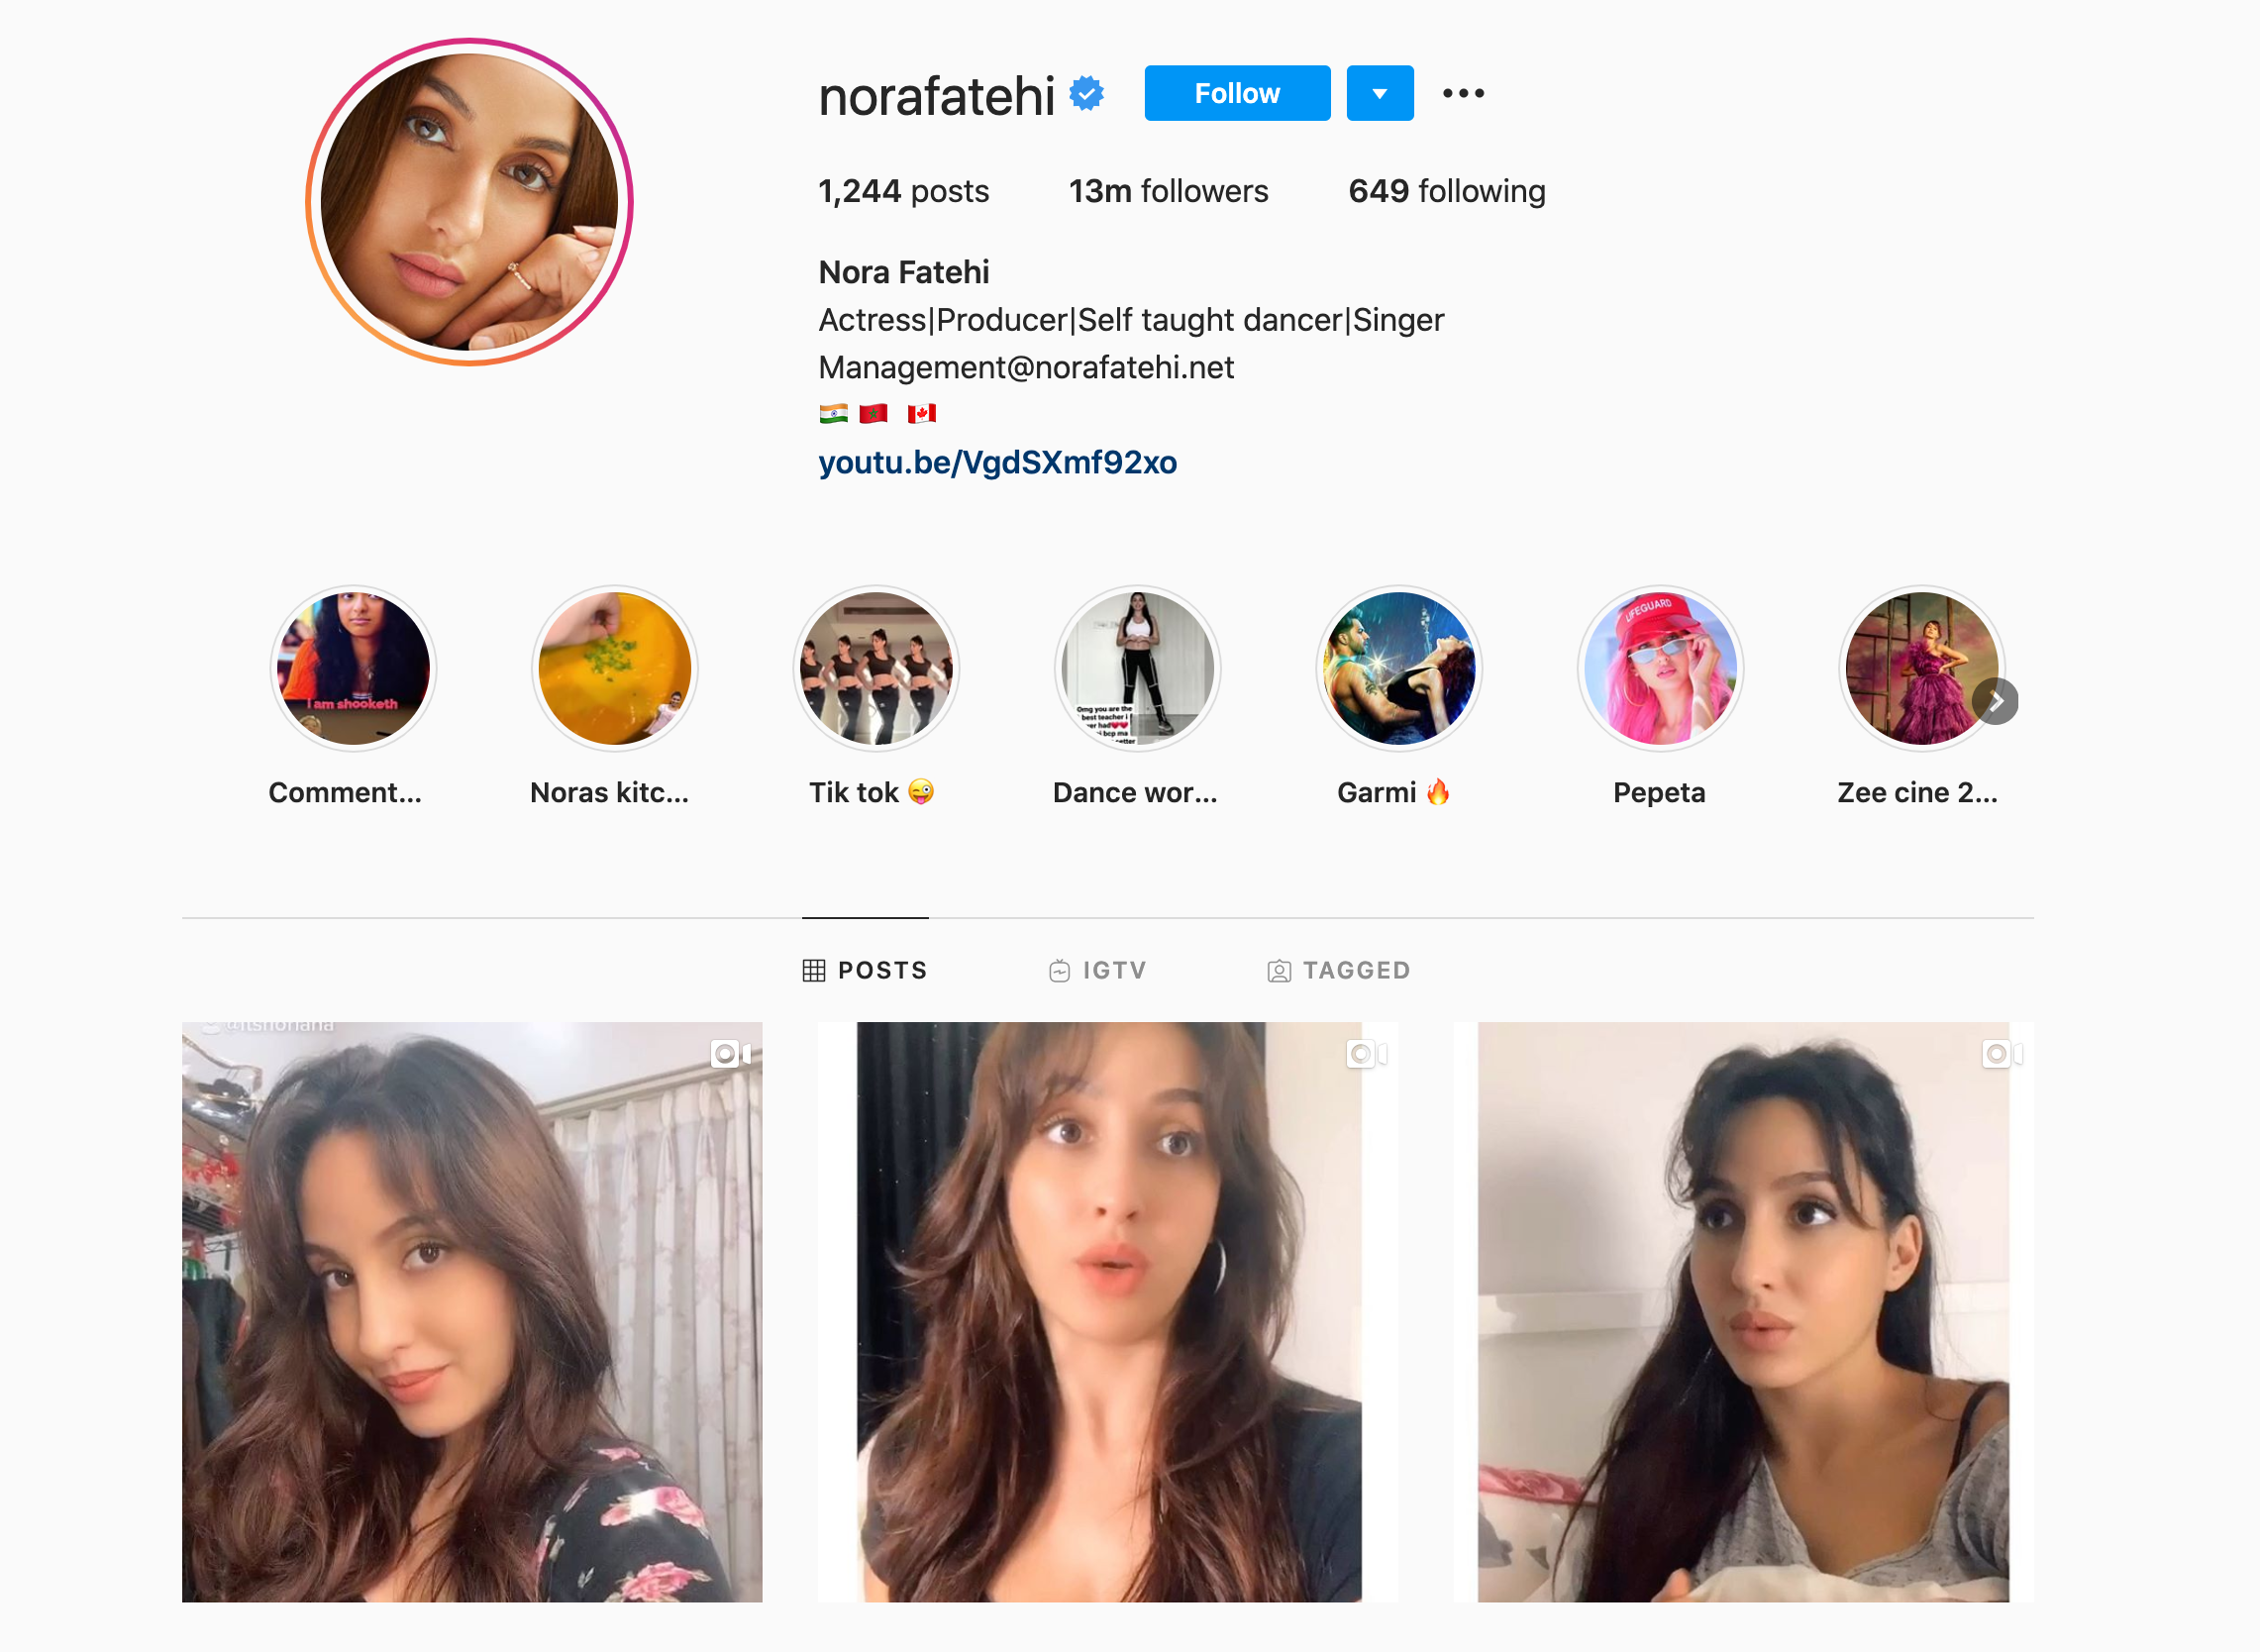 nora fatehi entertainment influencer